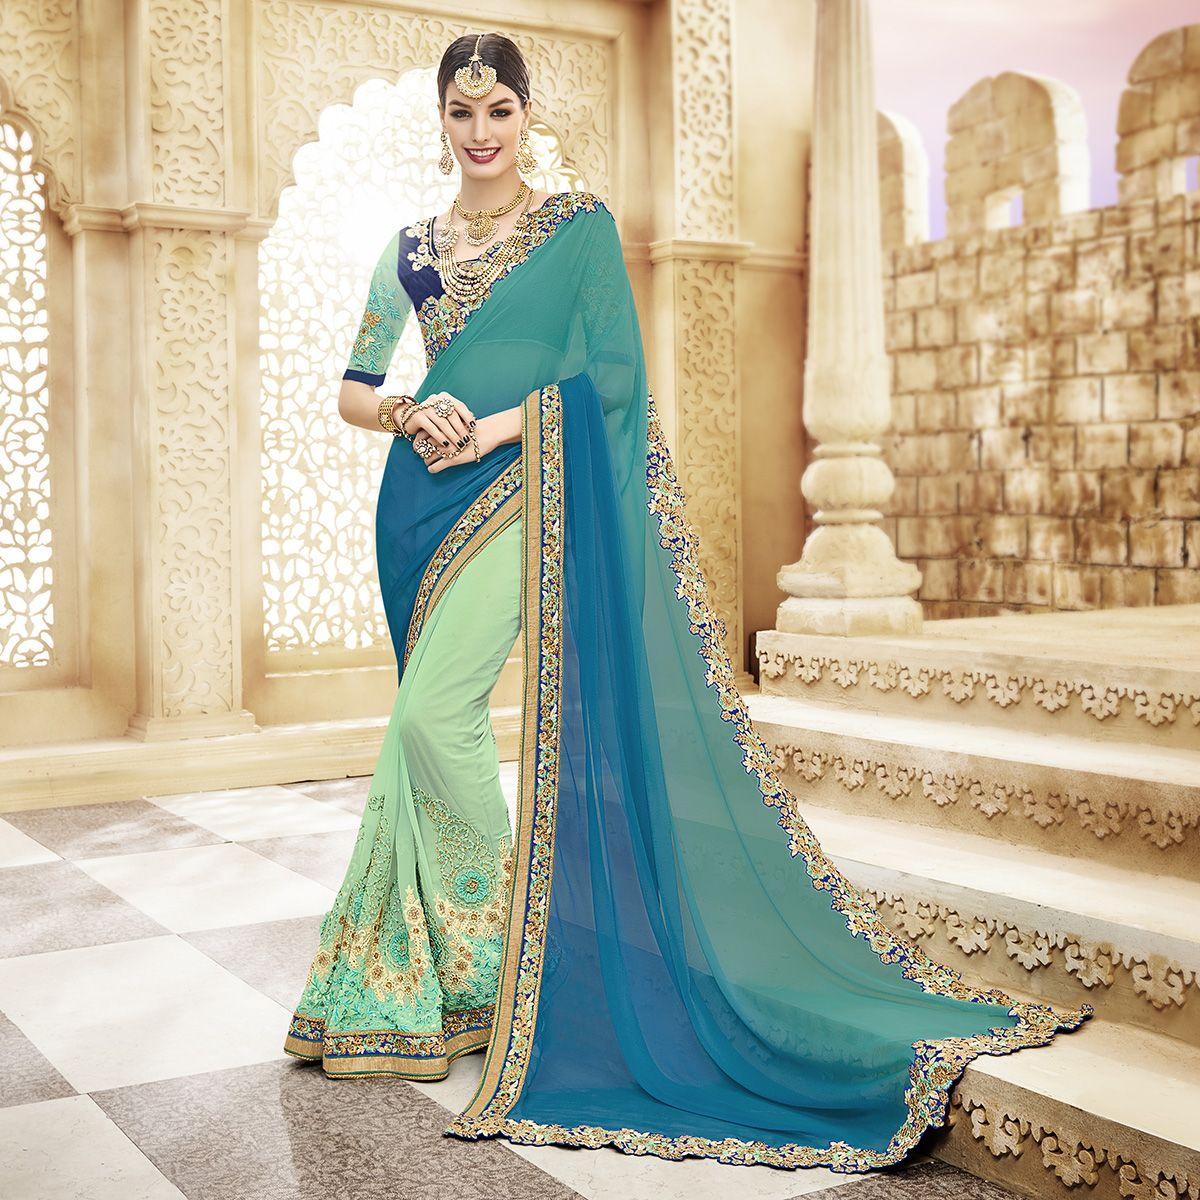 Partywear #Saree #OFF #Sale Awesome Fancy Fabric Half-Half Designer ...